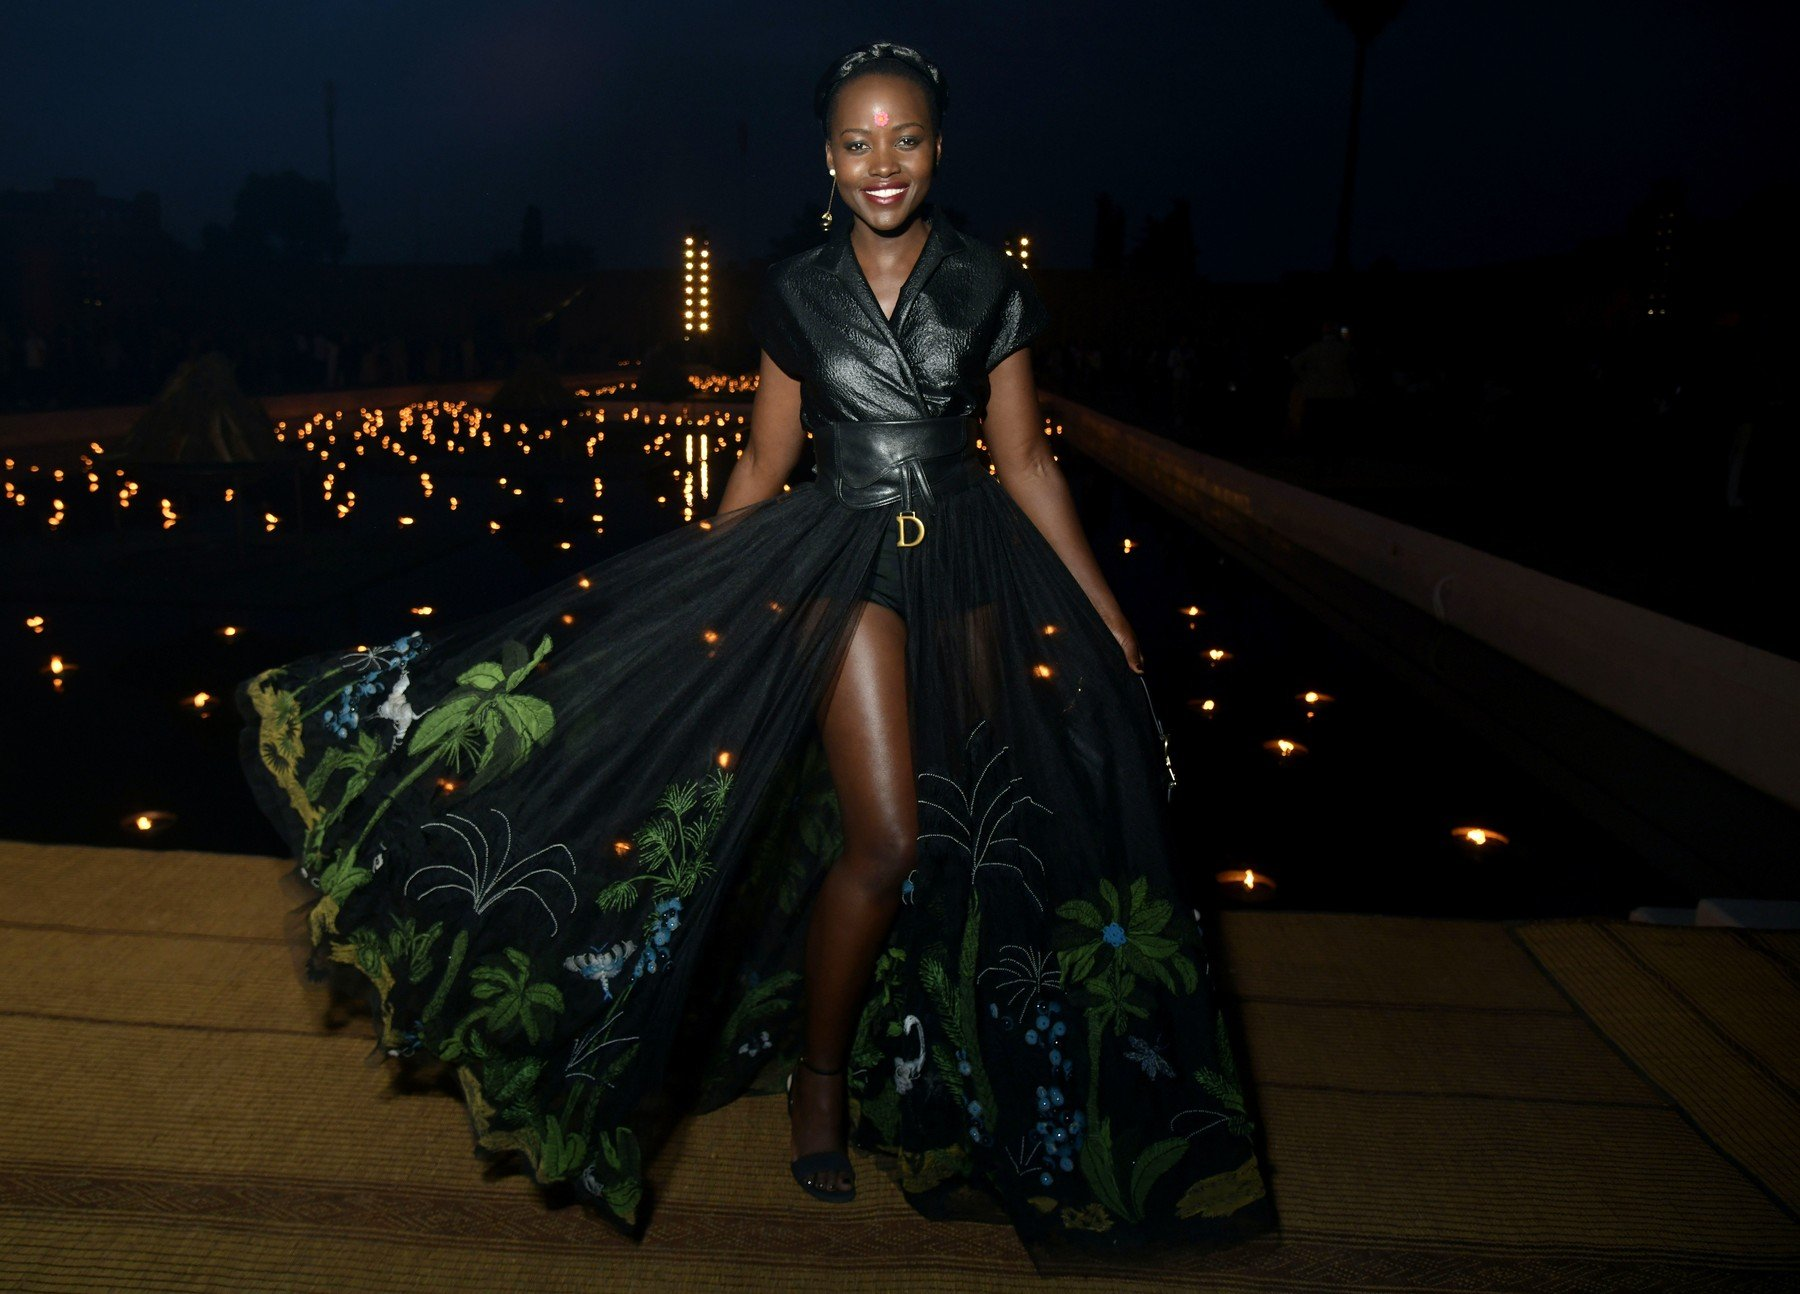 Lupita Nyong'o in the front row Dior Cruise 2020 show, Front Row, Palais El Badi, Marrakech, Morocco - 29 Apr 2019, Image: 429654324, License: Rights-managed, Restrictions: , Model Release: no, Credit line: Profimedia, TEMP Rex Features